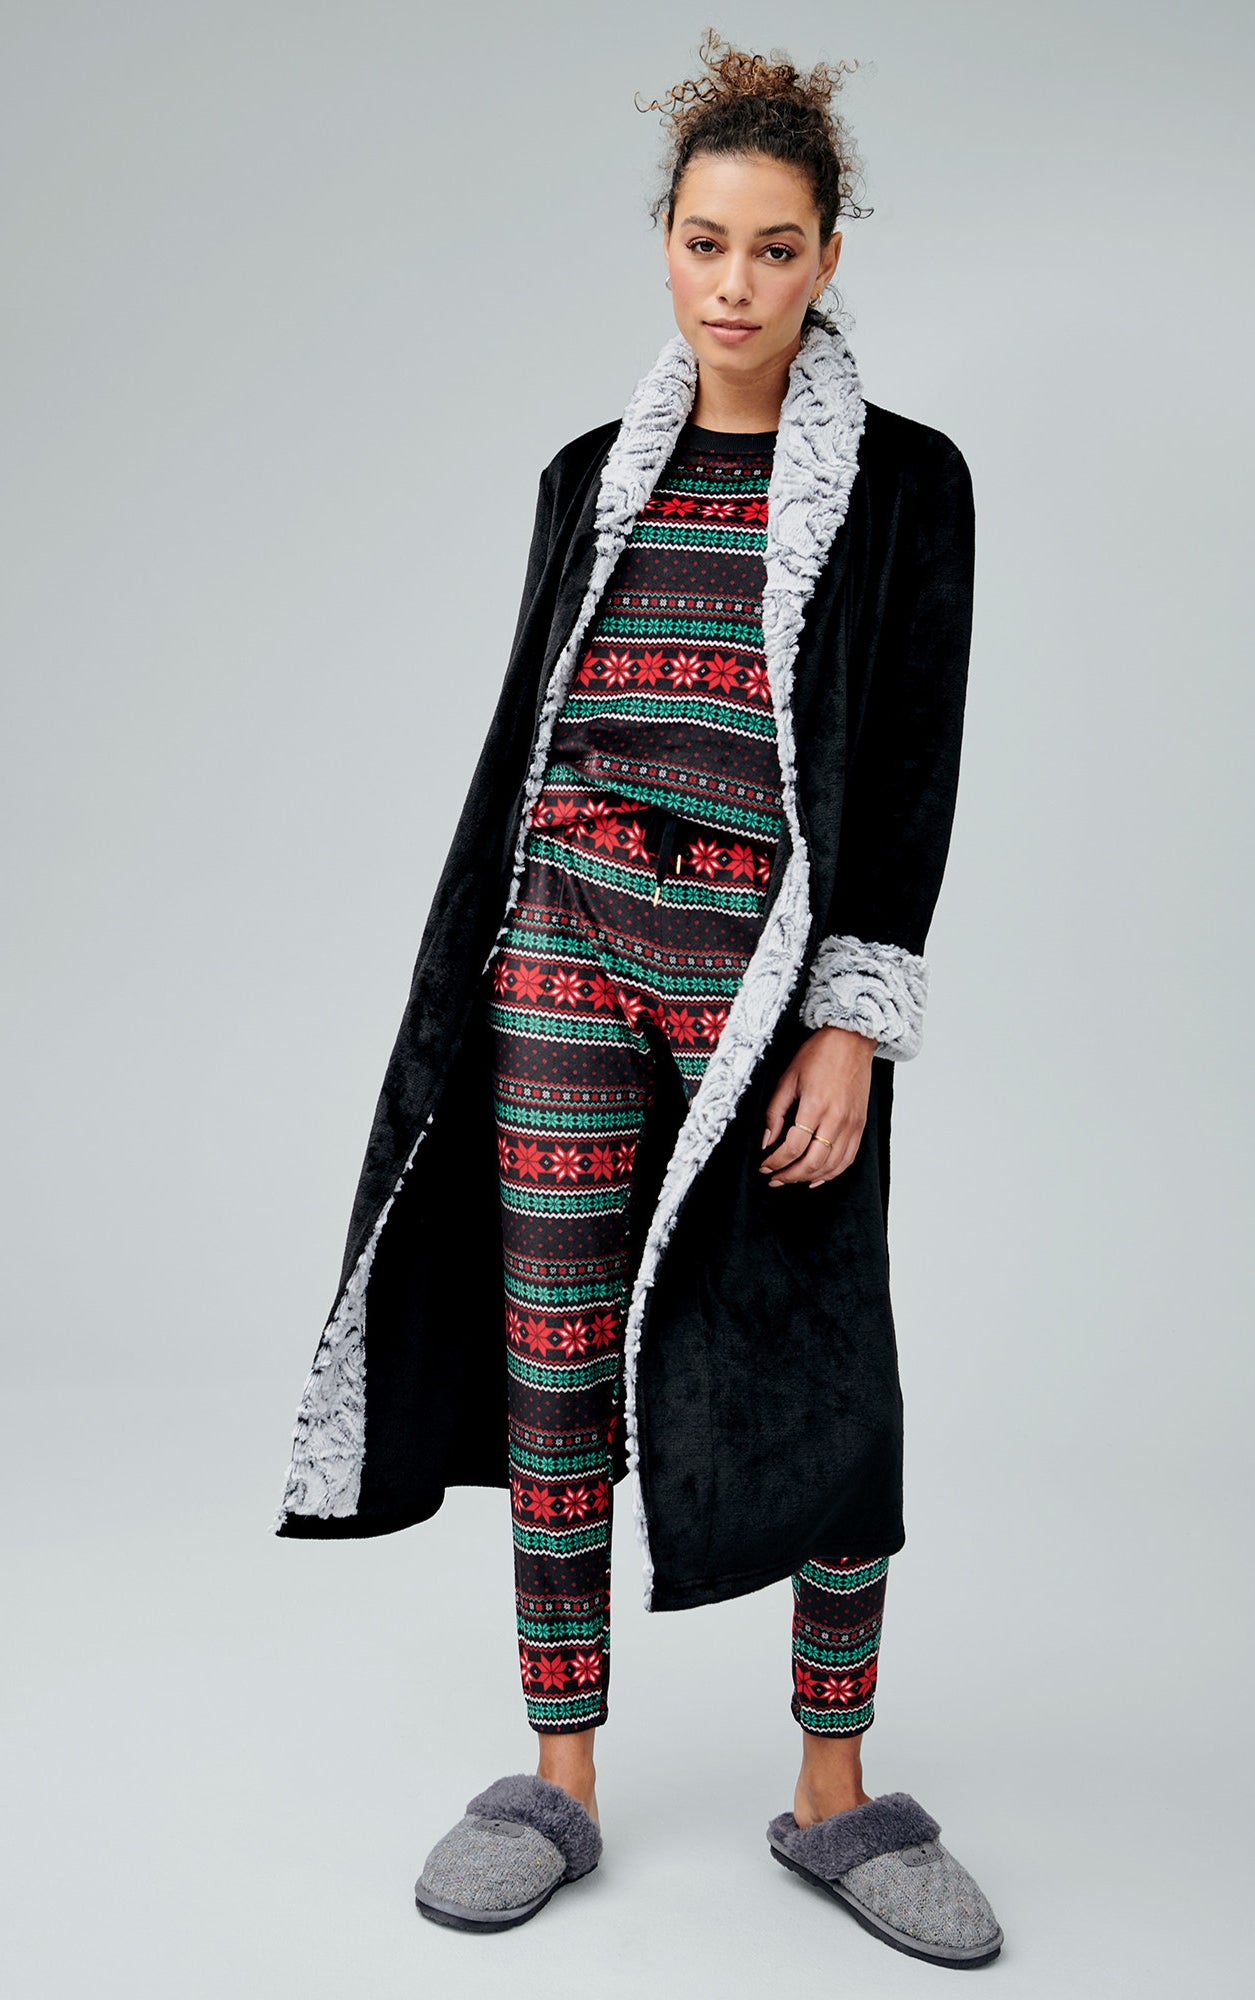 Model is wearing patterned Christmas pajamas under a black fuzzy robe